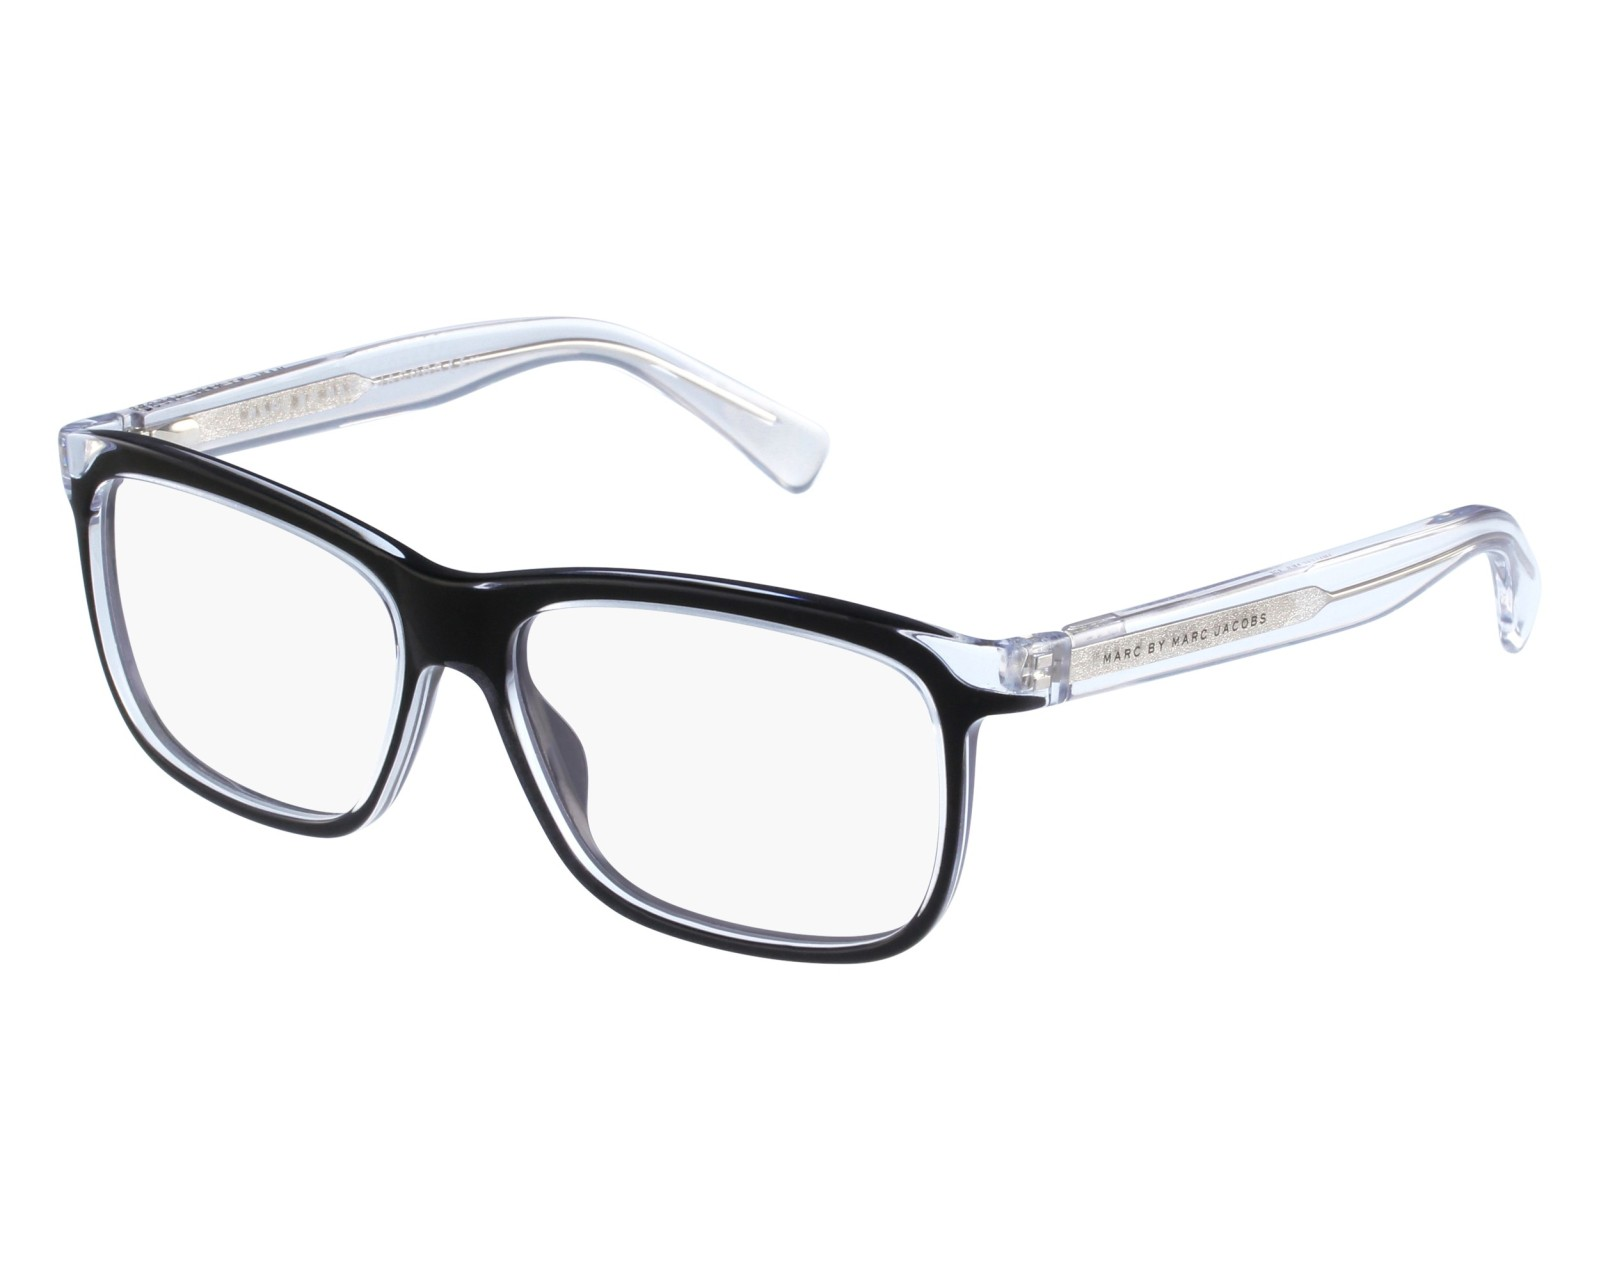 2d9089026c2 eyeglasses Marc by Marc Jacobs MMJ-615 MHL - Black Crystal front view